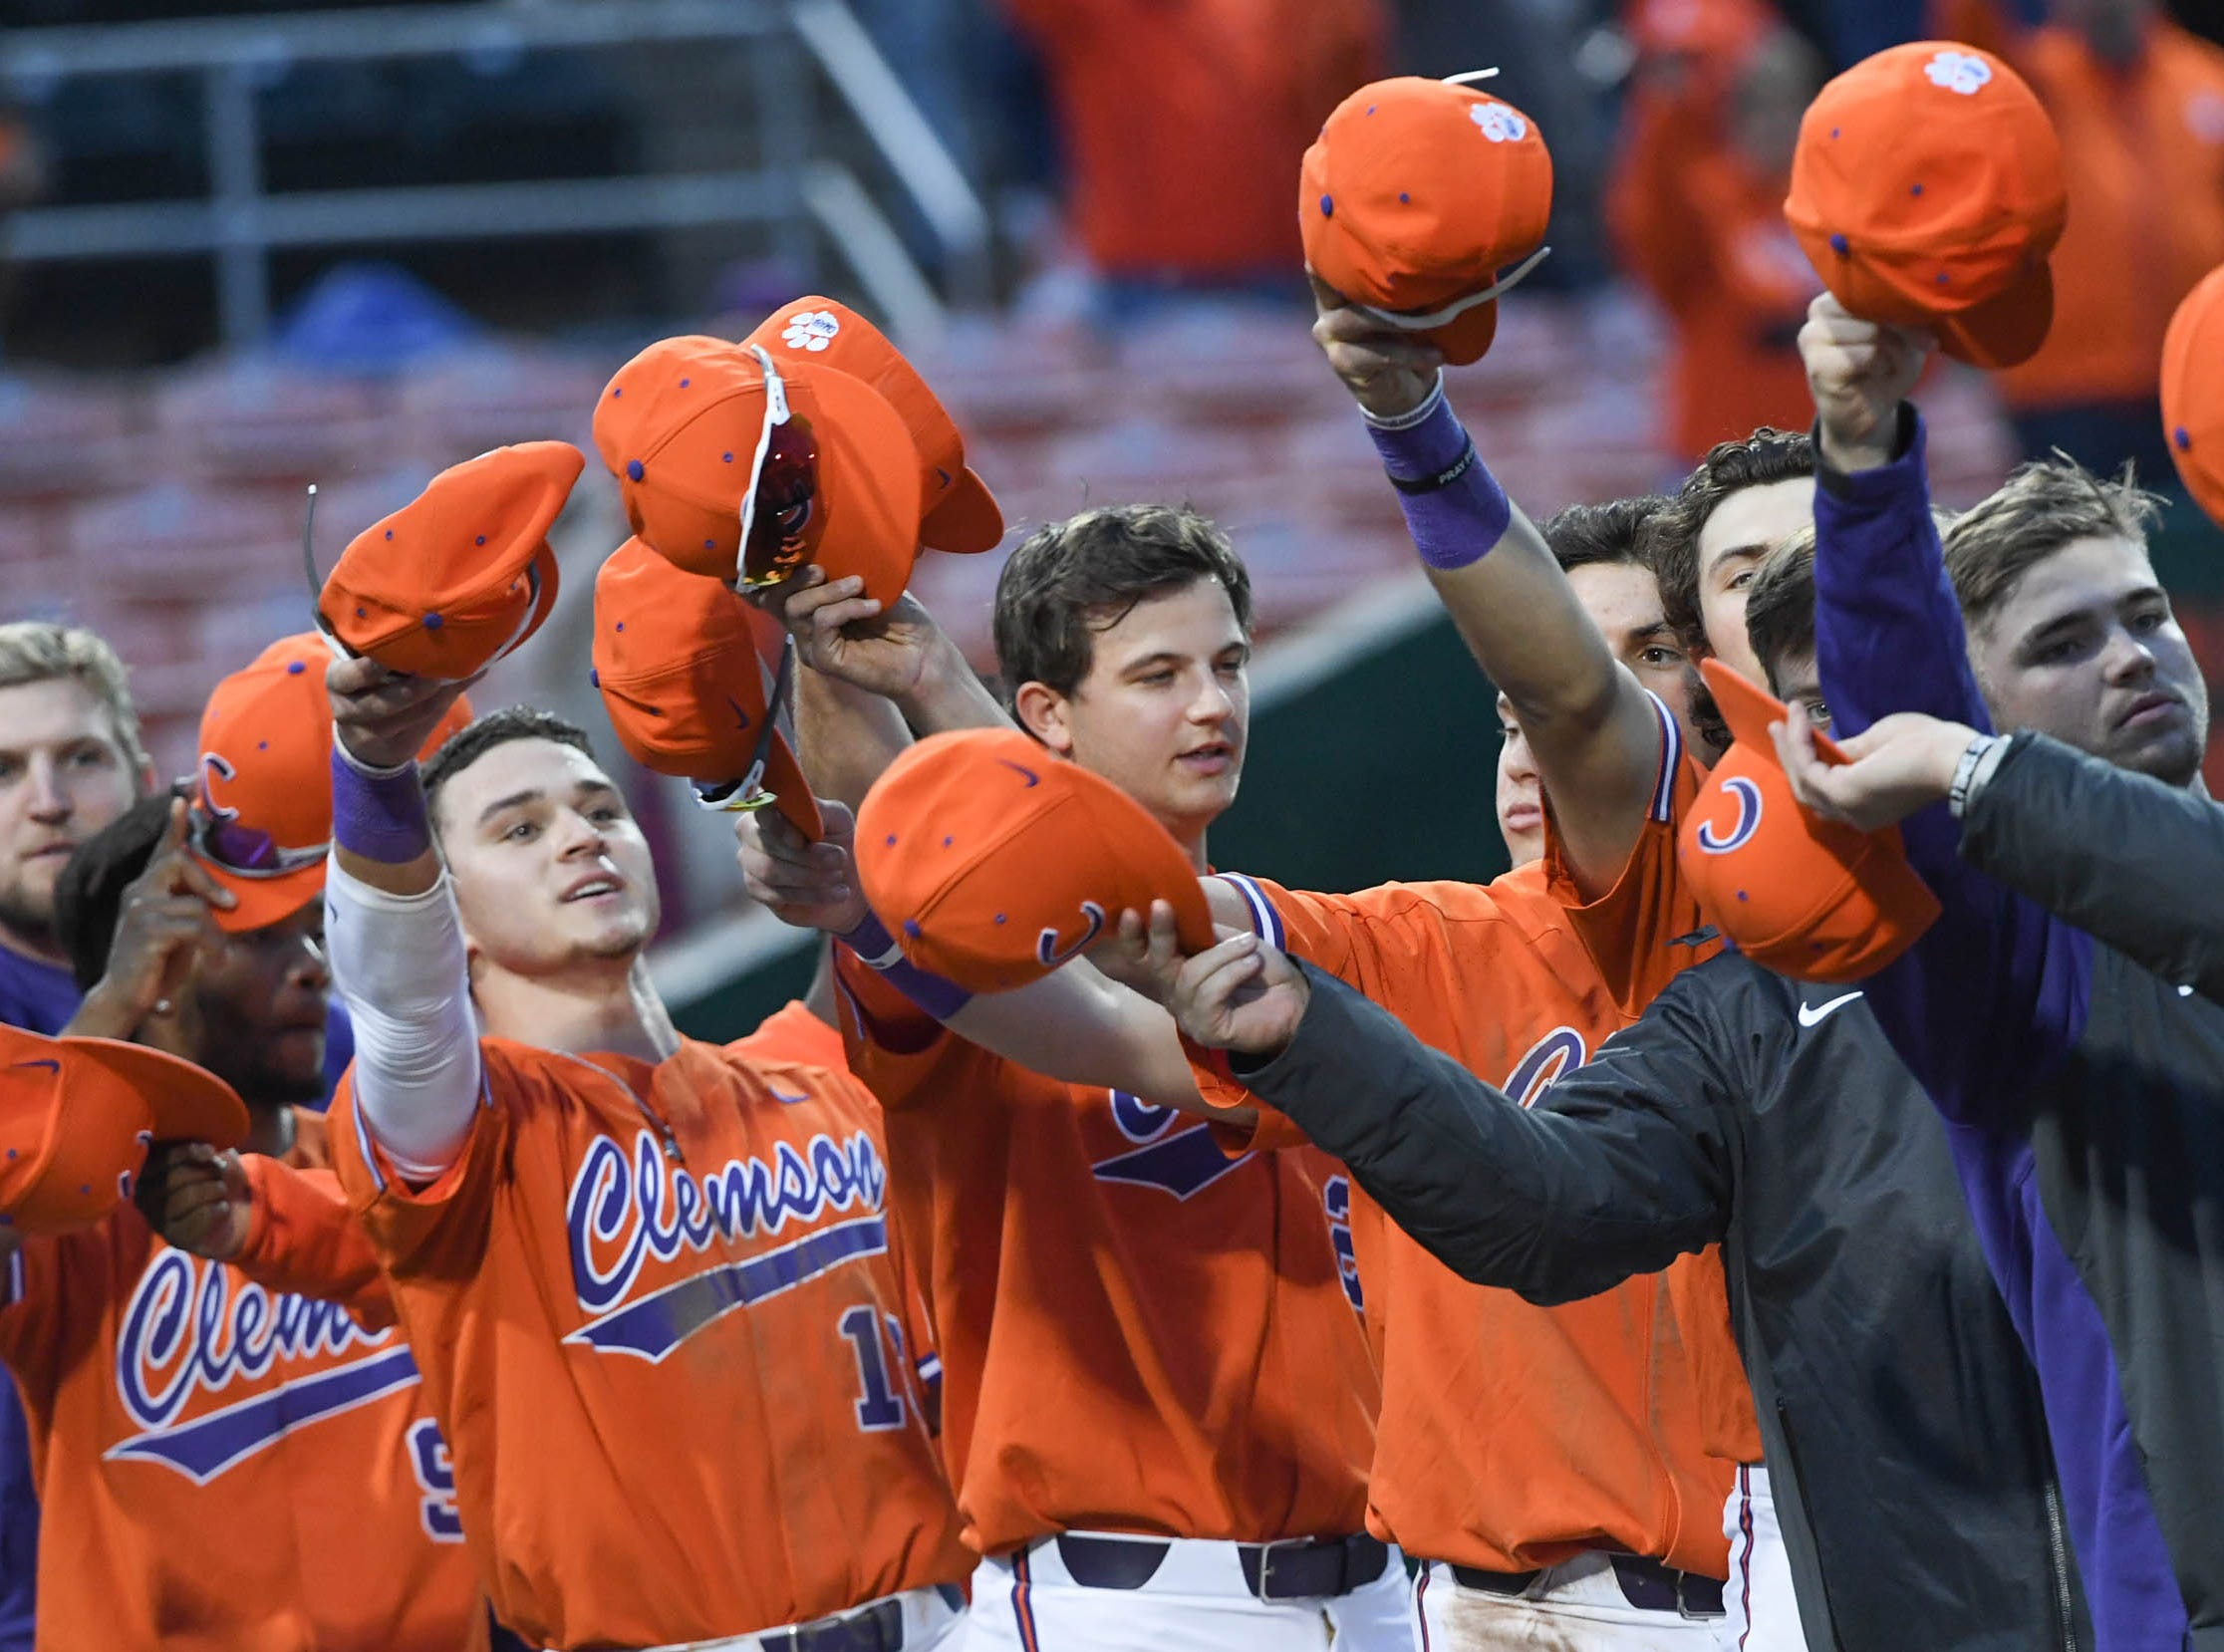 Clemson players point to the Cheap Seats fans in right field after joining in the alma mater.  The Tigers won 6-2 versus South Alabama in the season opener at Doug Kingsmore Stadium in Clemson Friday, February 15, 2019.